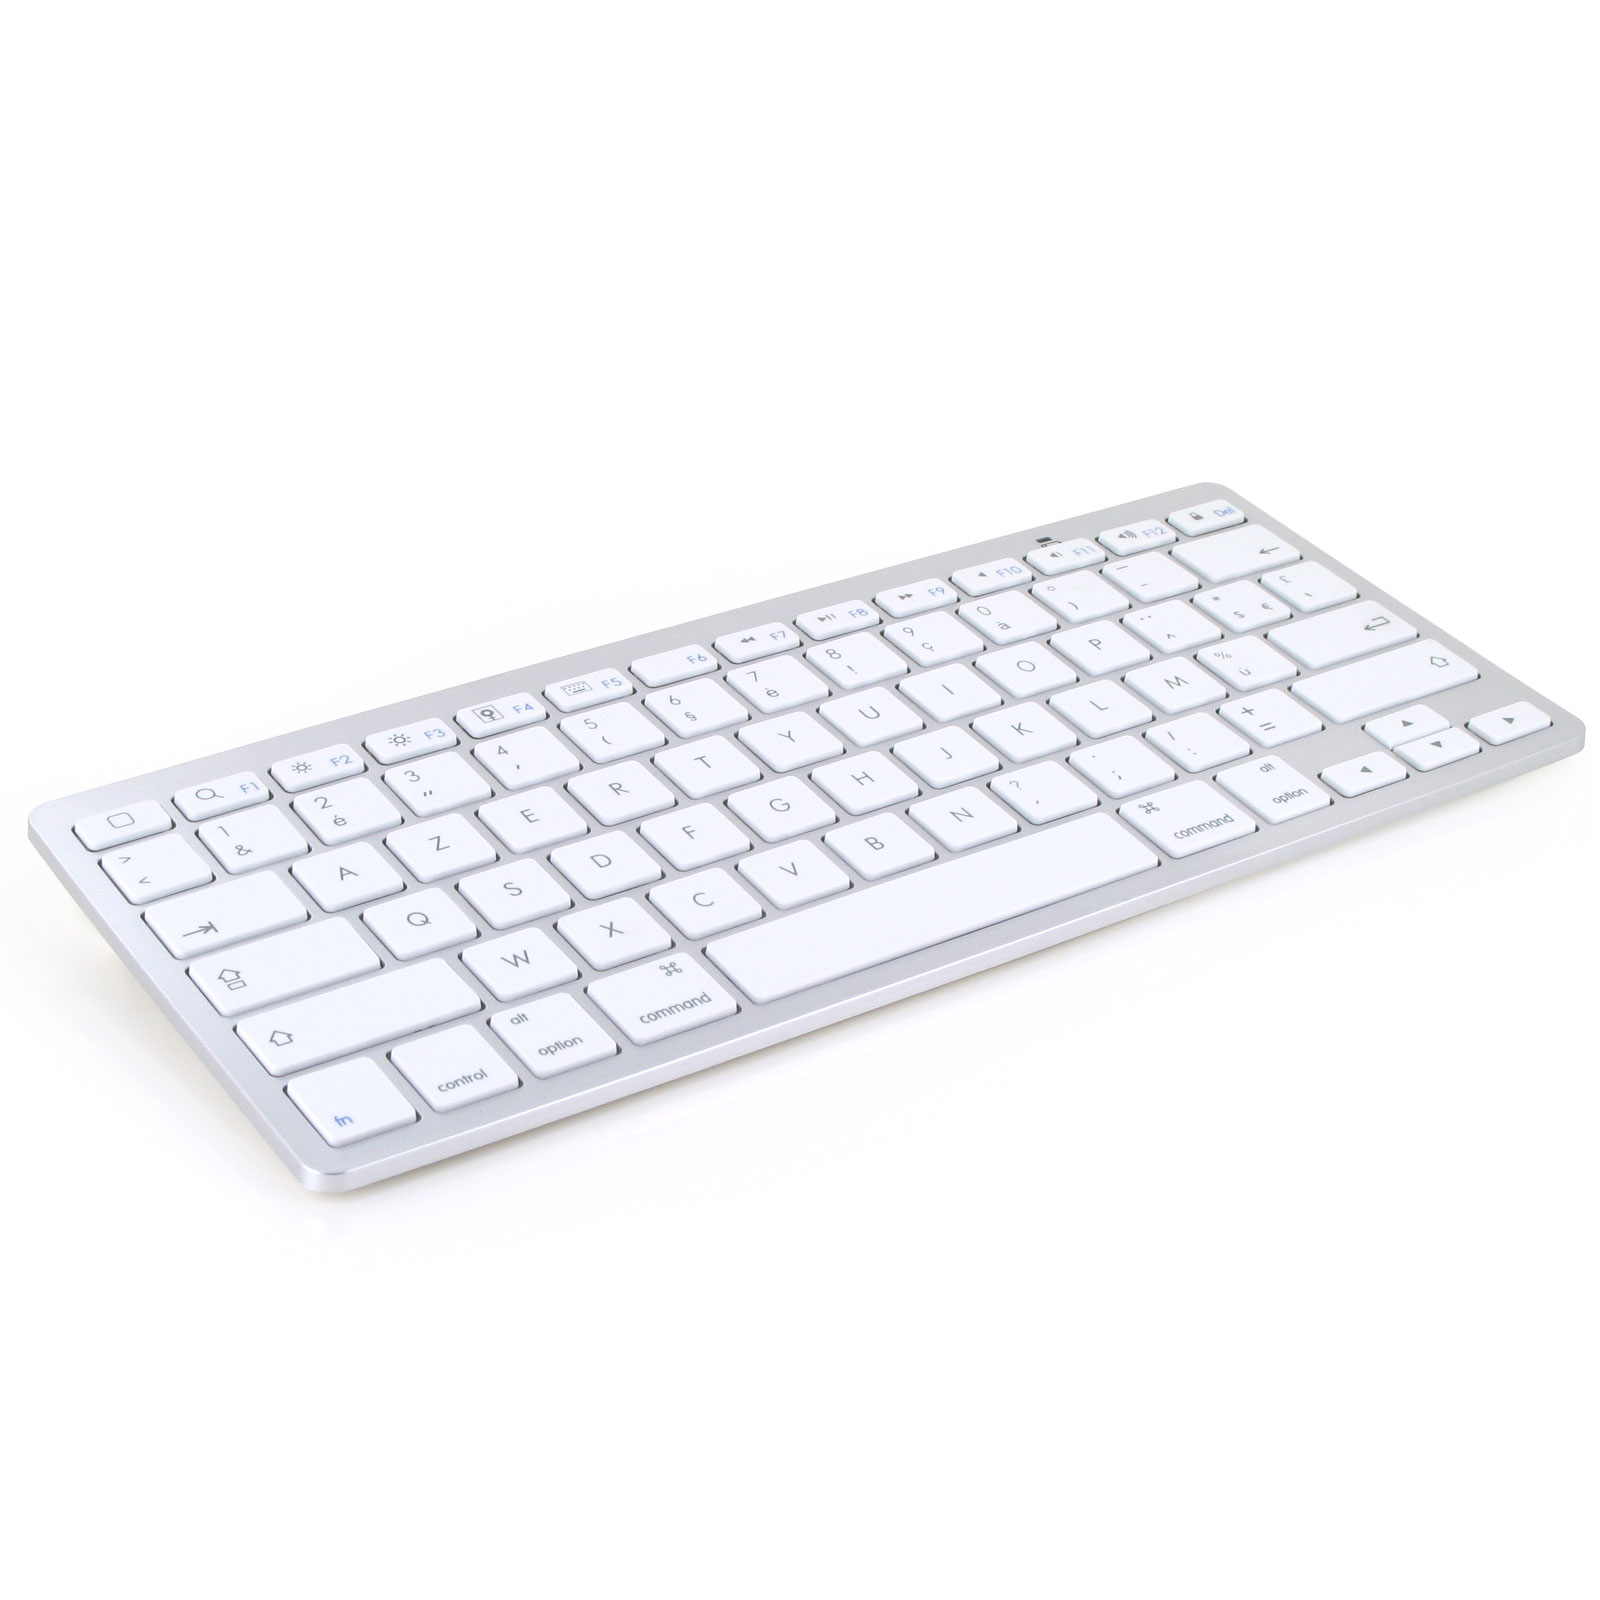 mobility lab mini wireless keyboard for mac clavier pc mobility lab sur. Black Bedroom Furniture Sets. Home Design Ideas